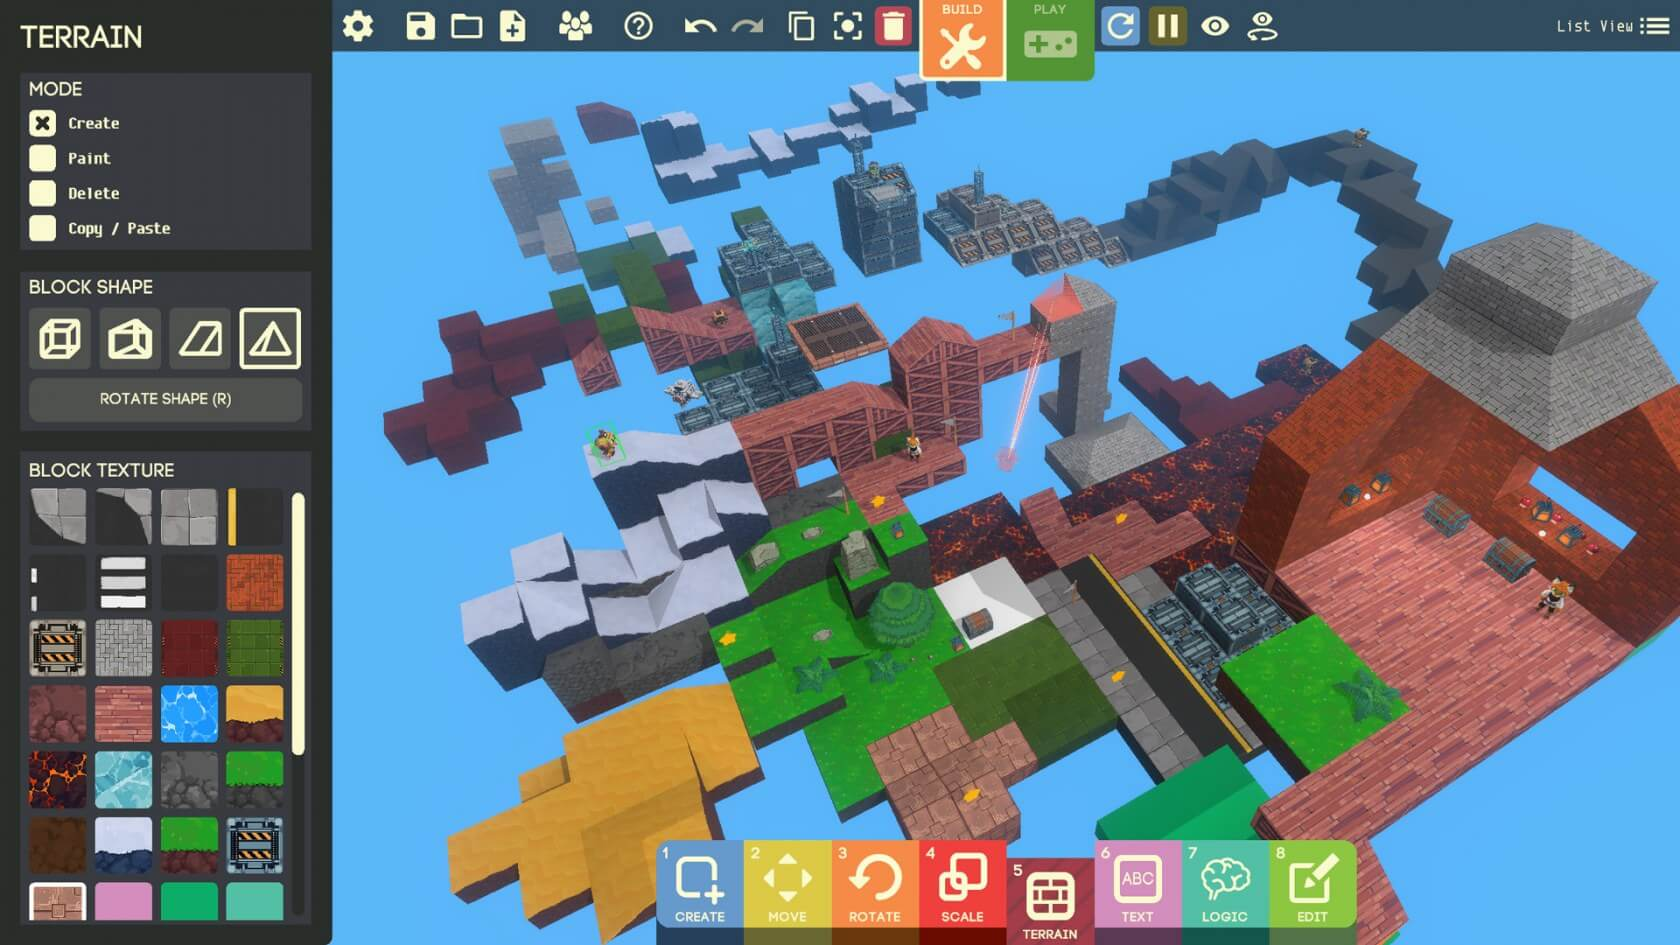 Google's 'Game Builder' tool lets you create 3D games with no